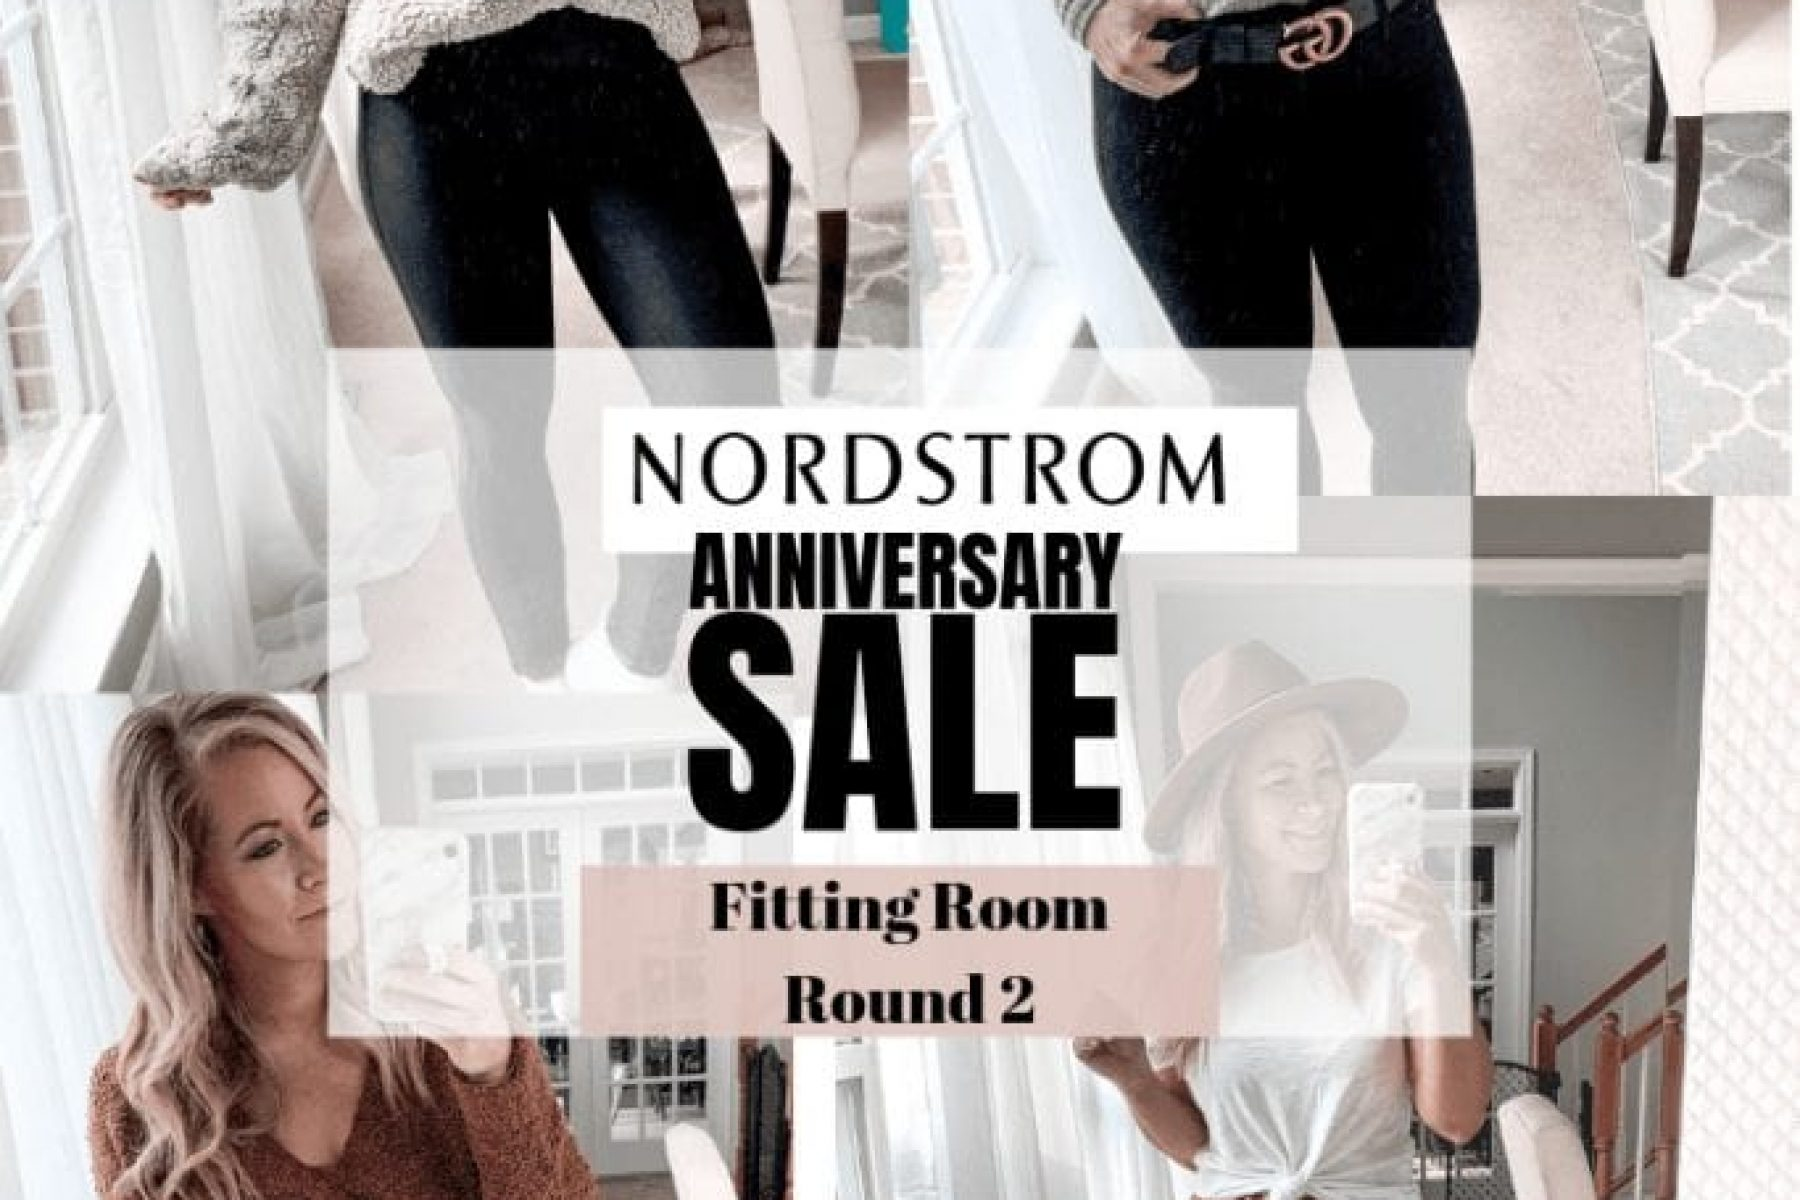 NSALE Fitting Room